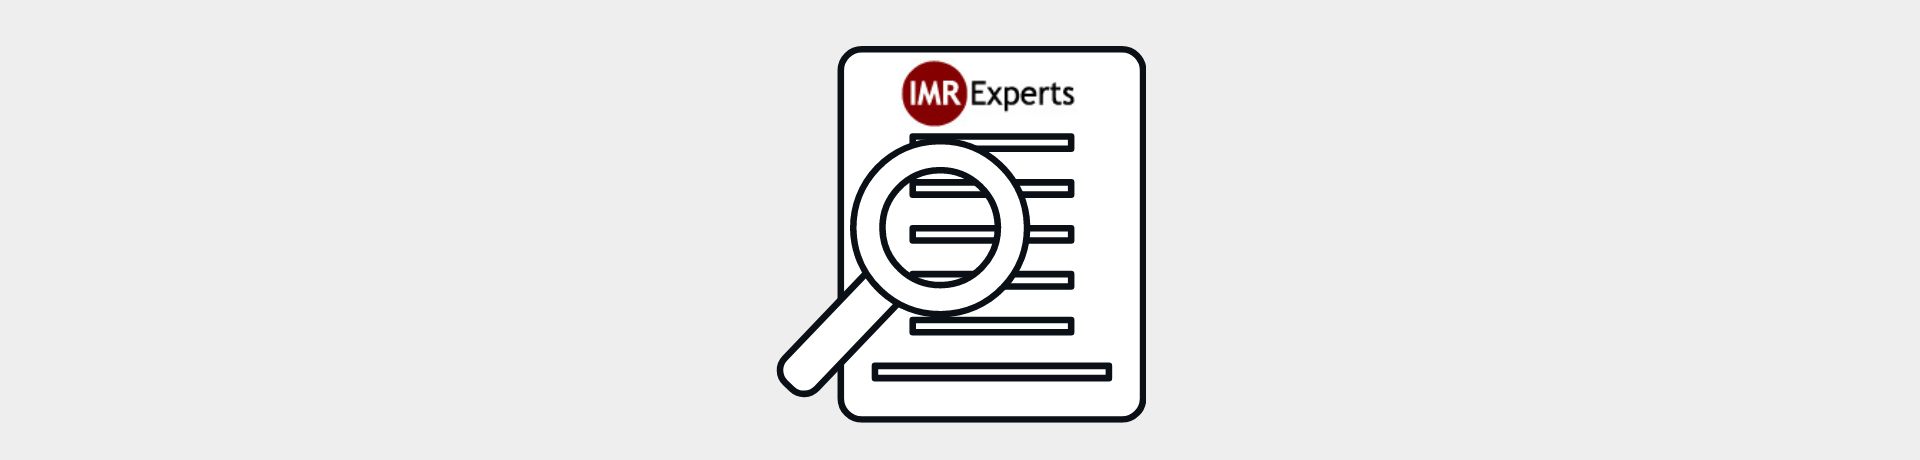 IMR Experts